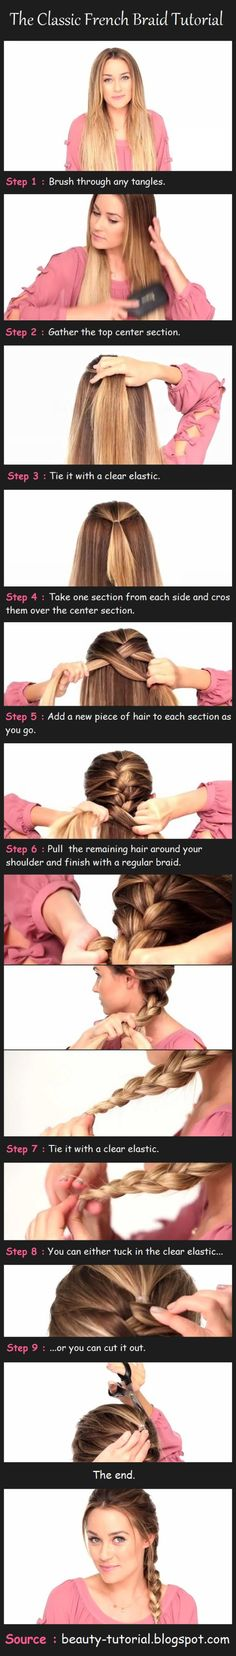 The Classic French Braid Tutorial | after 22 years maybe now I can finally learn how to French braid